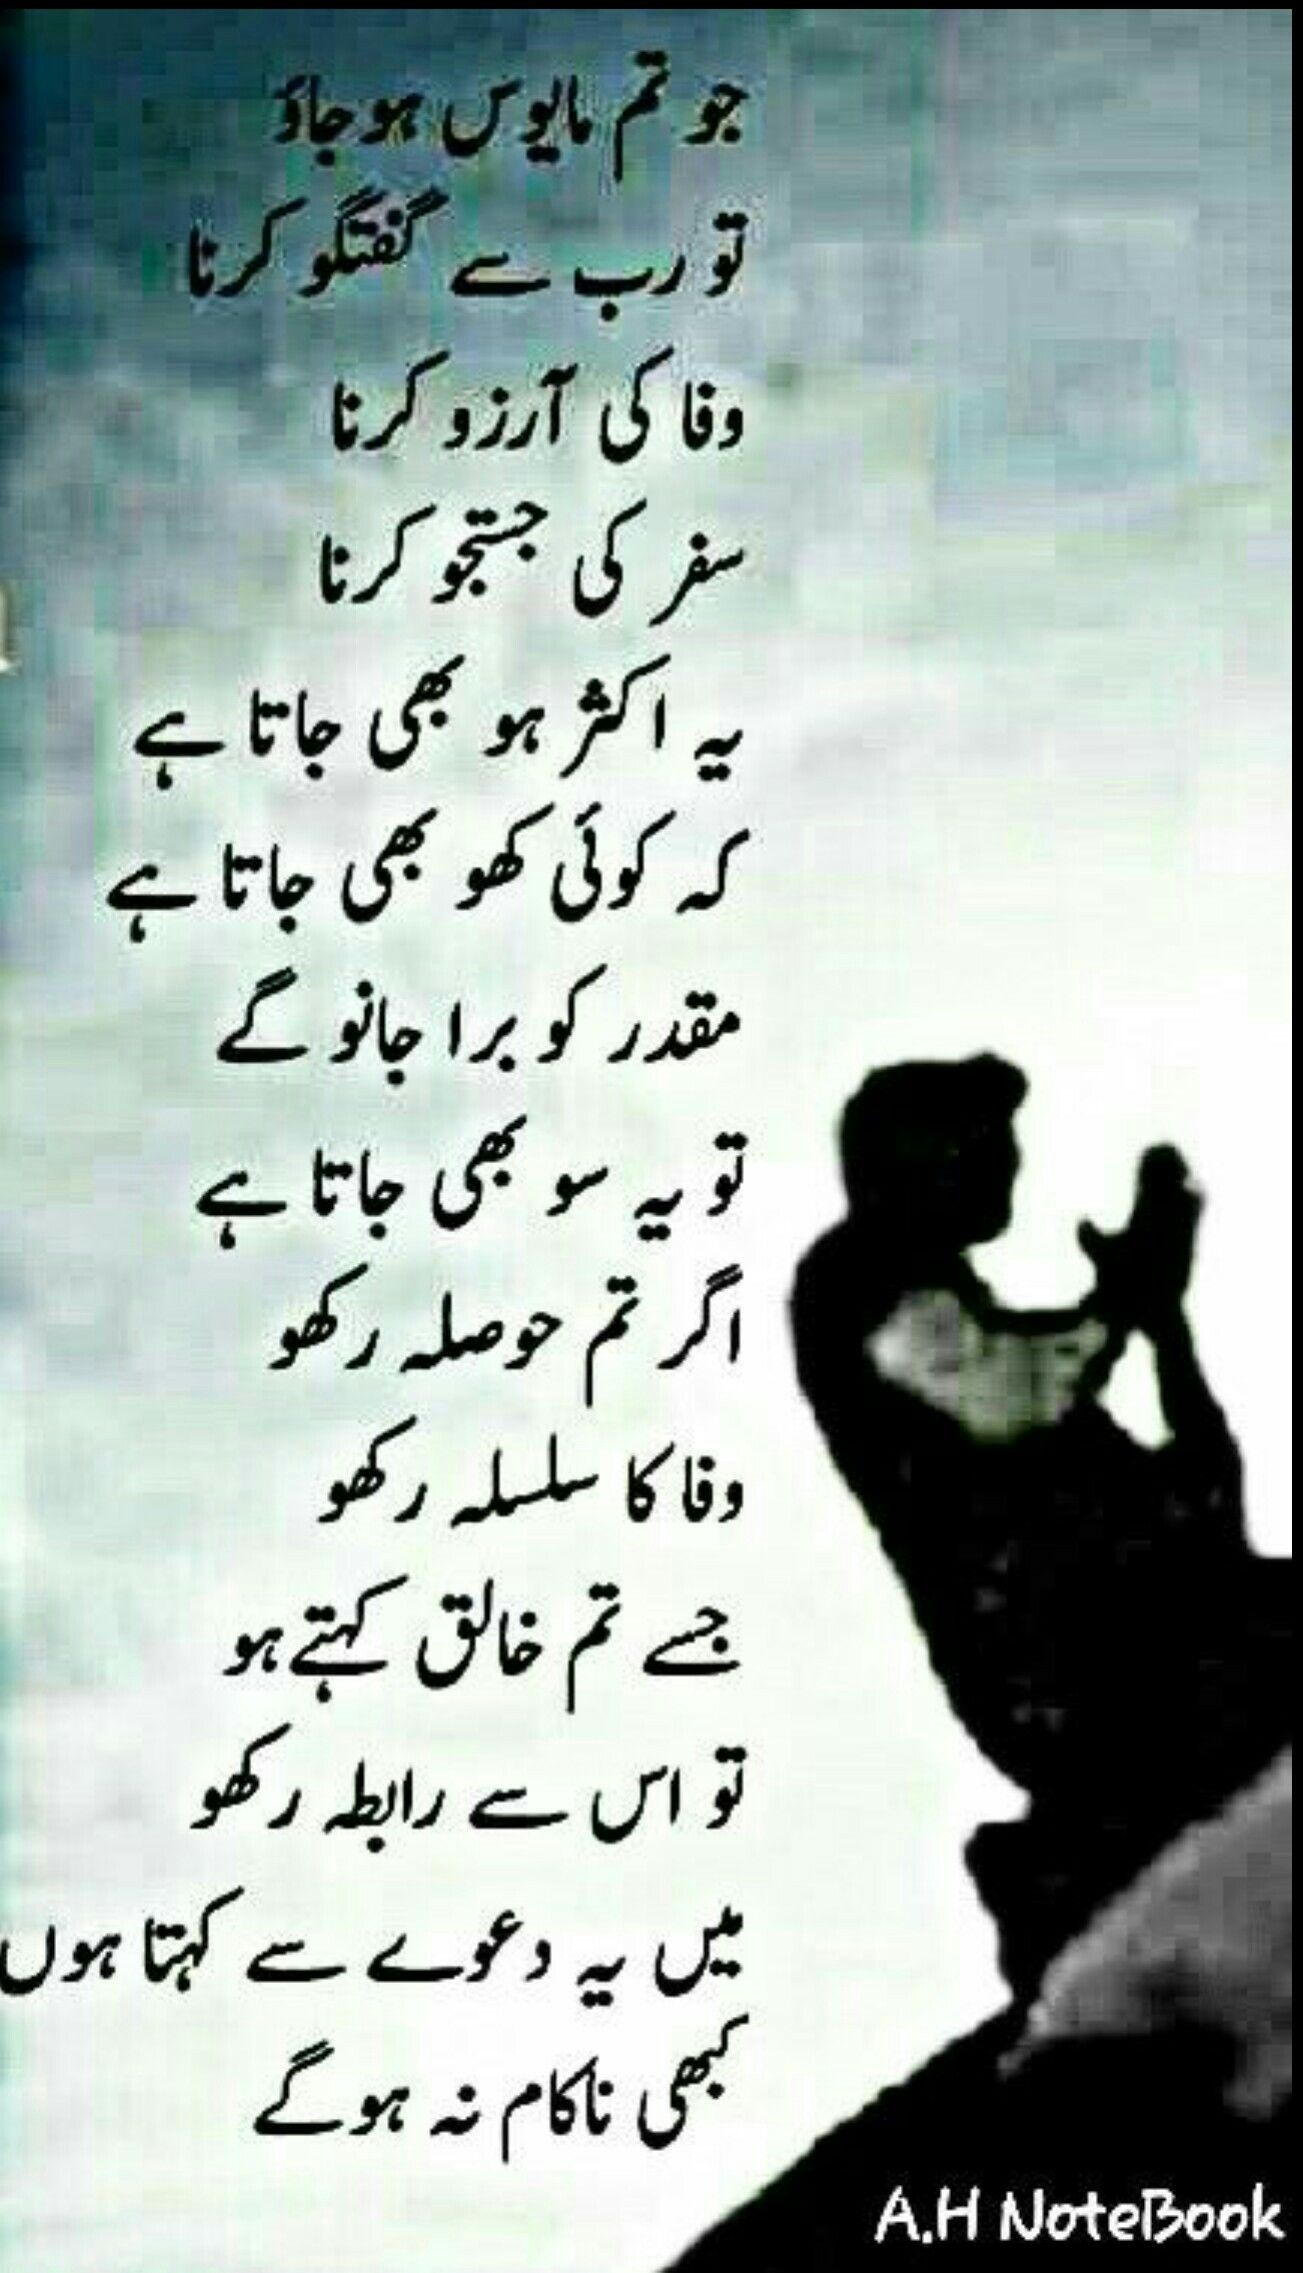 Aaaa lllllaaaa Urdu QuotesIslamic QuotesLife